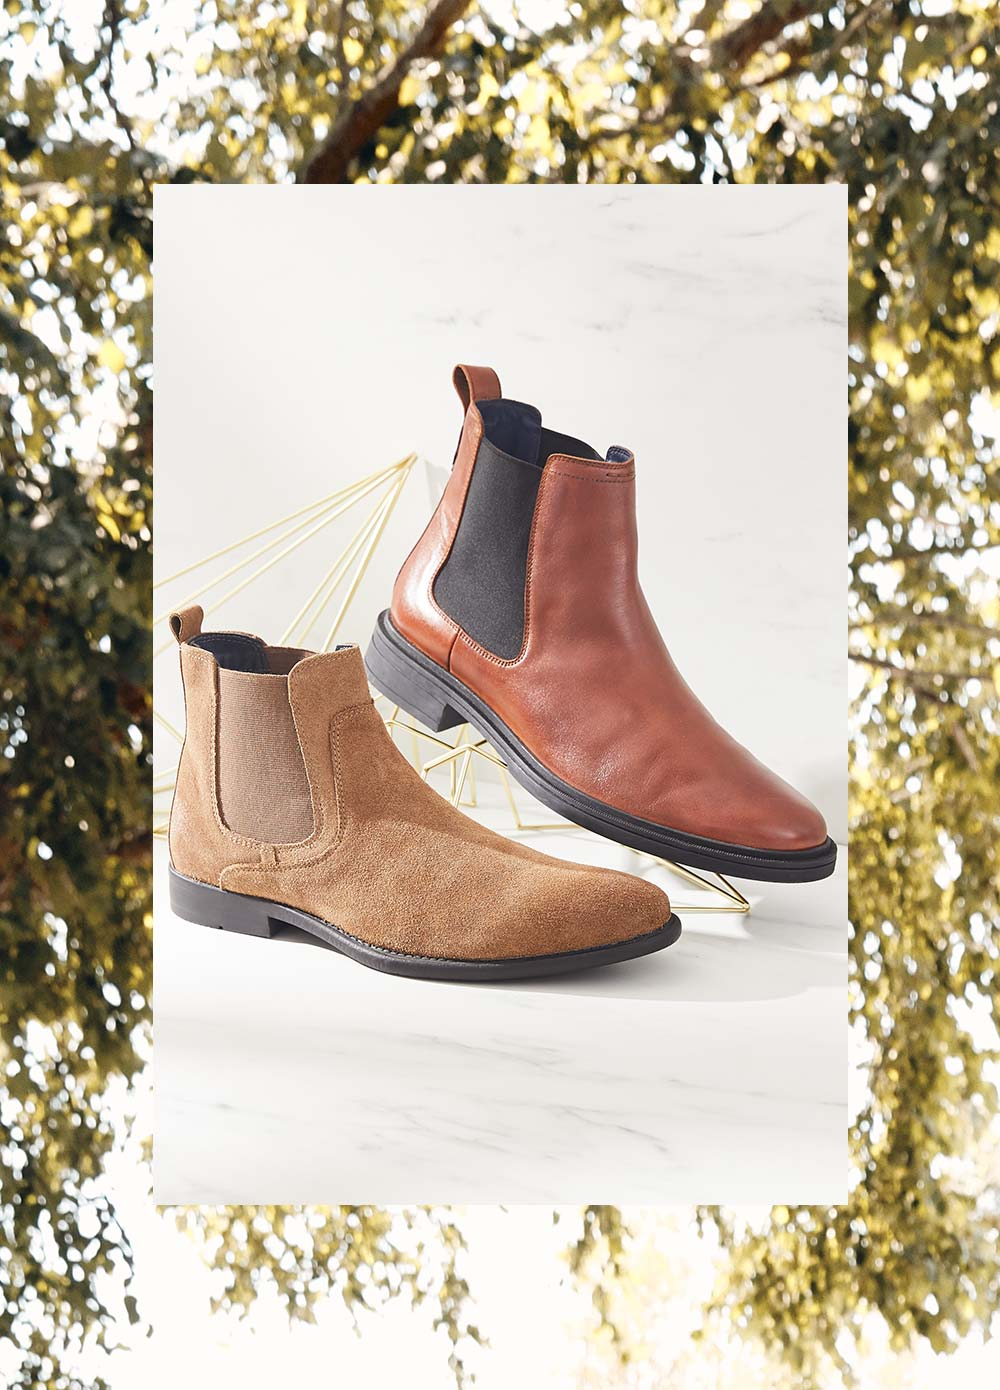 two chelsea boots